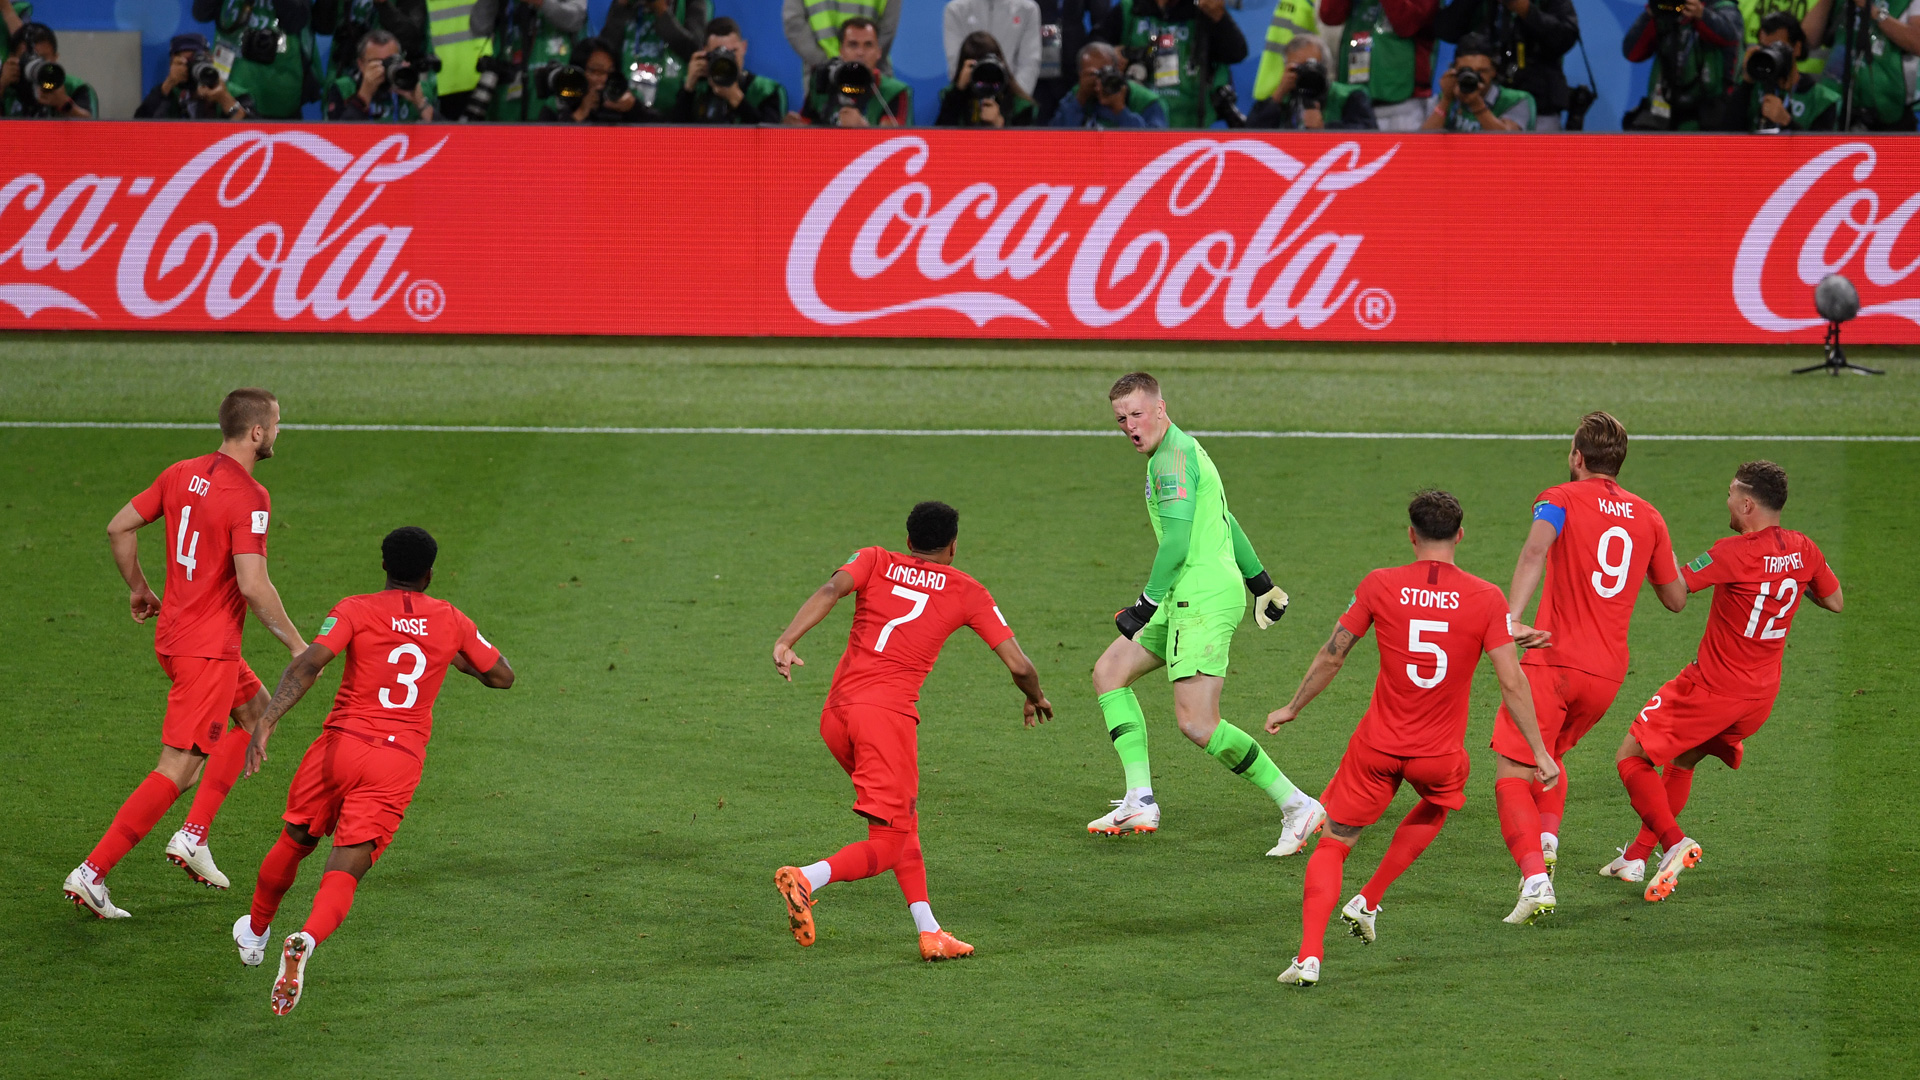 England Jordan Pickford World Cup Colombia 030718